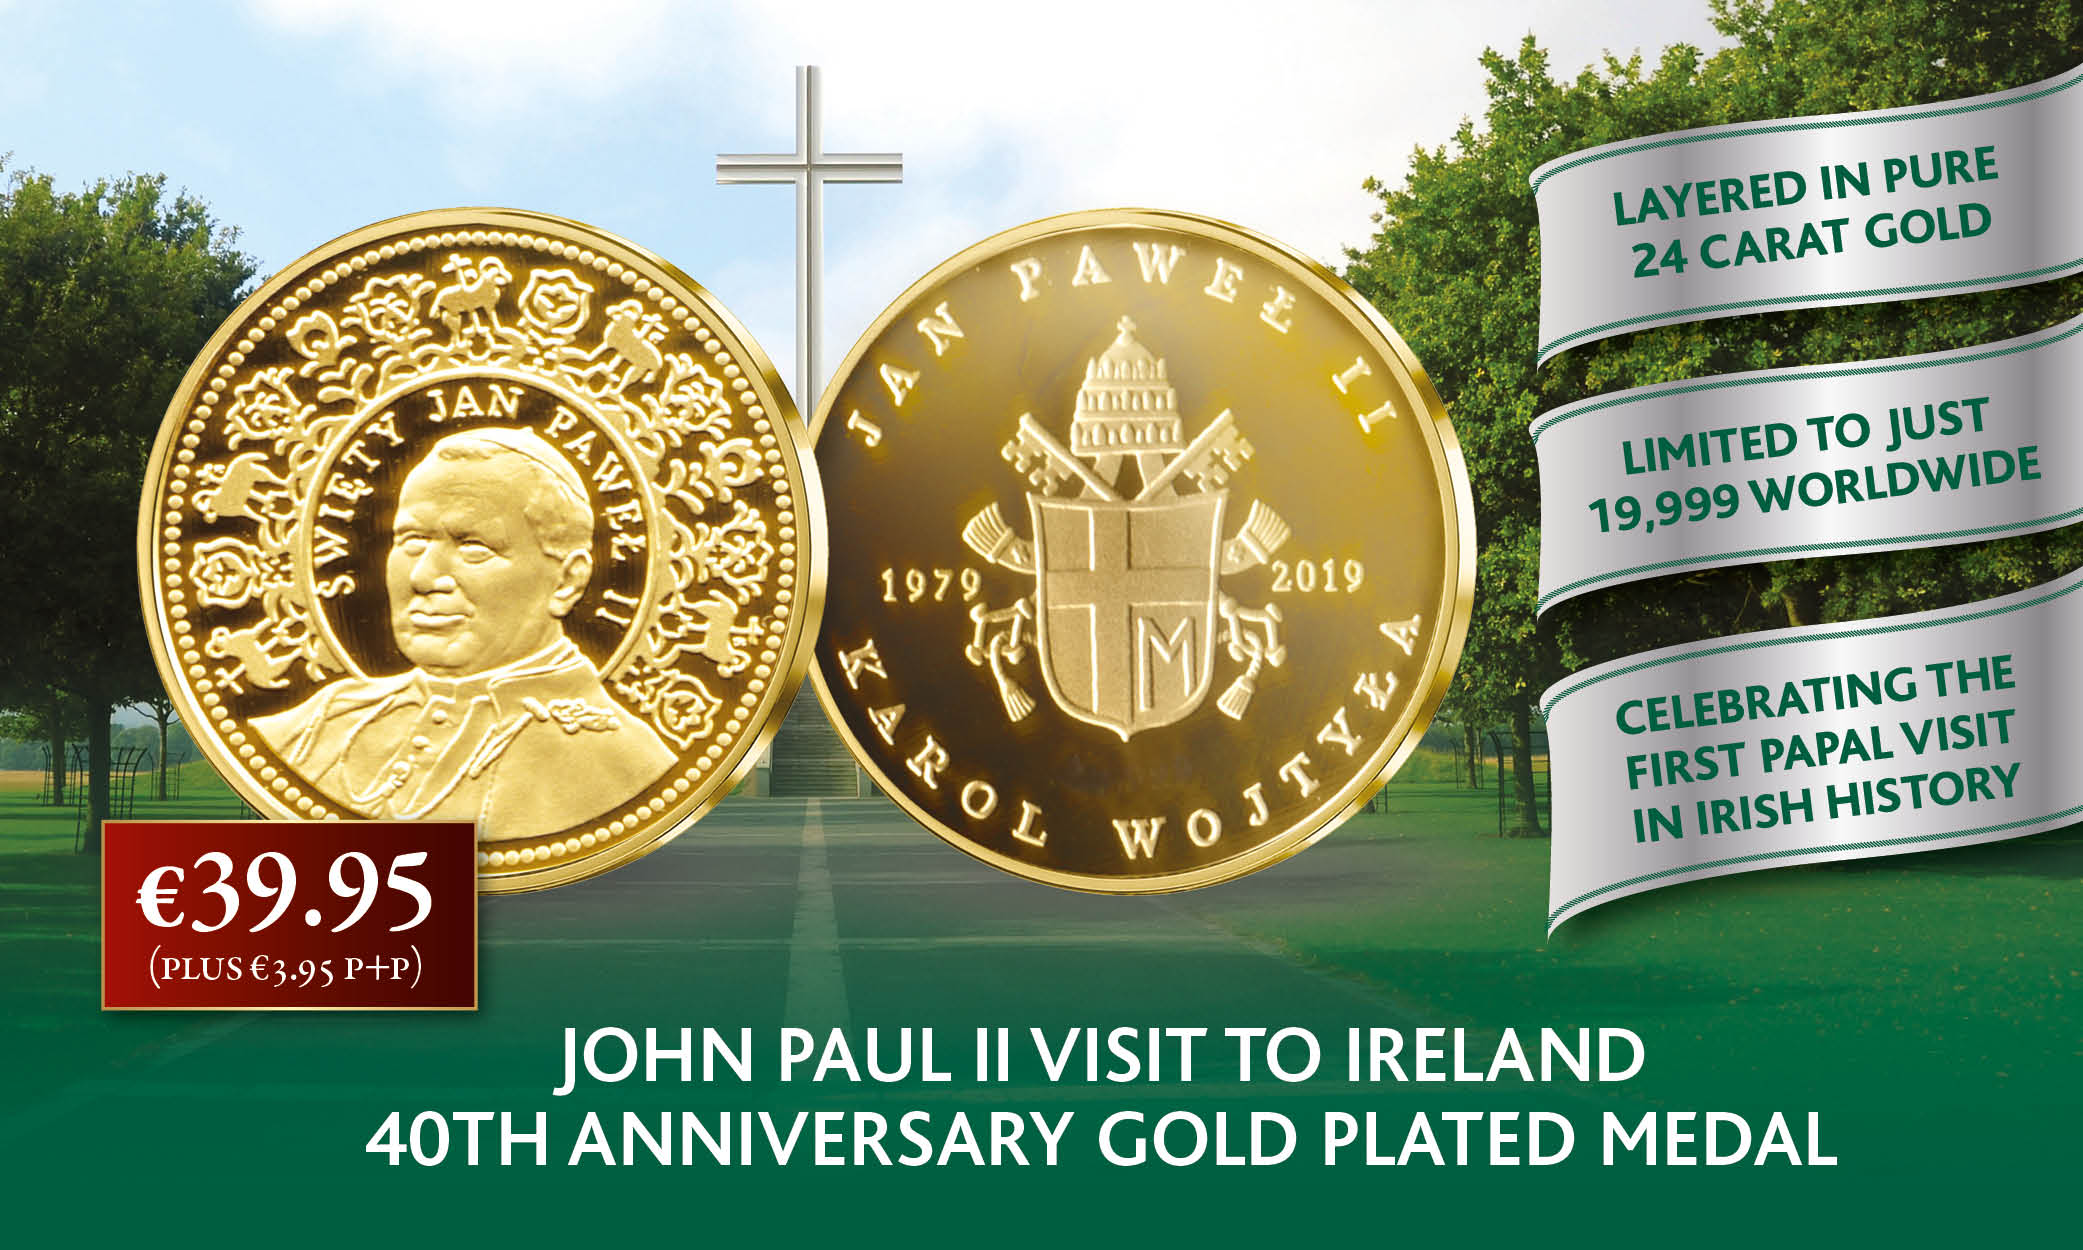 The John Paul II's Visit to Ireland 40th Anniversary Gold Plated Medal